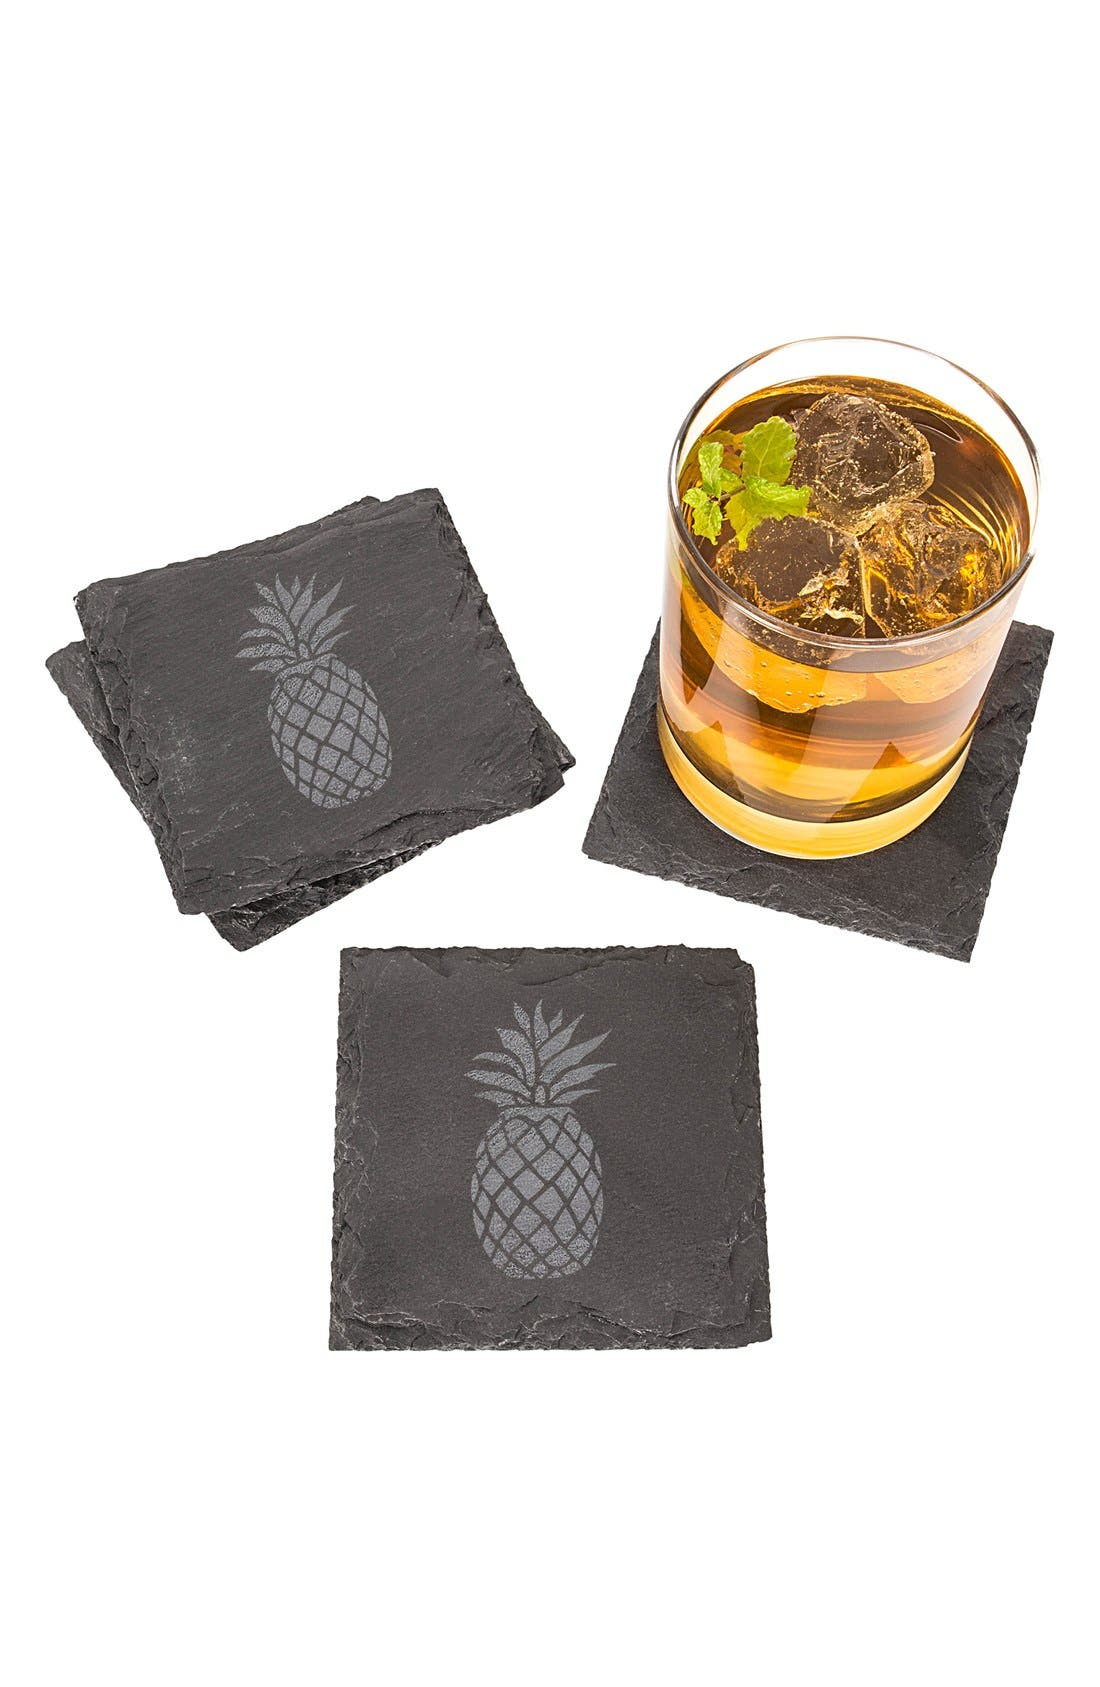 Set of 4 Pineapple Coasters,                             Main thumbnail 1, color,                             020